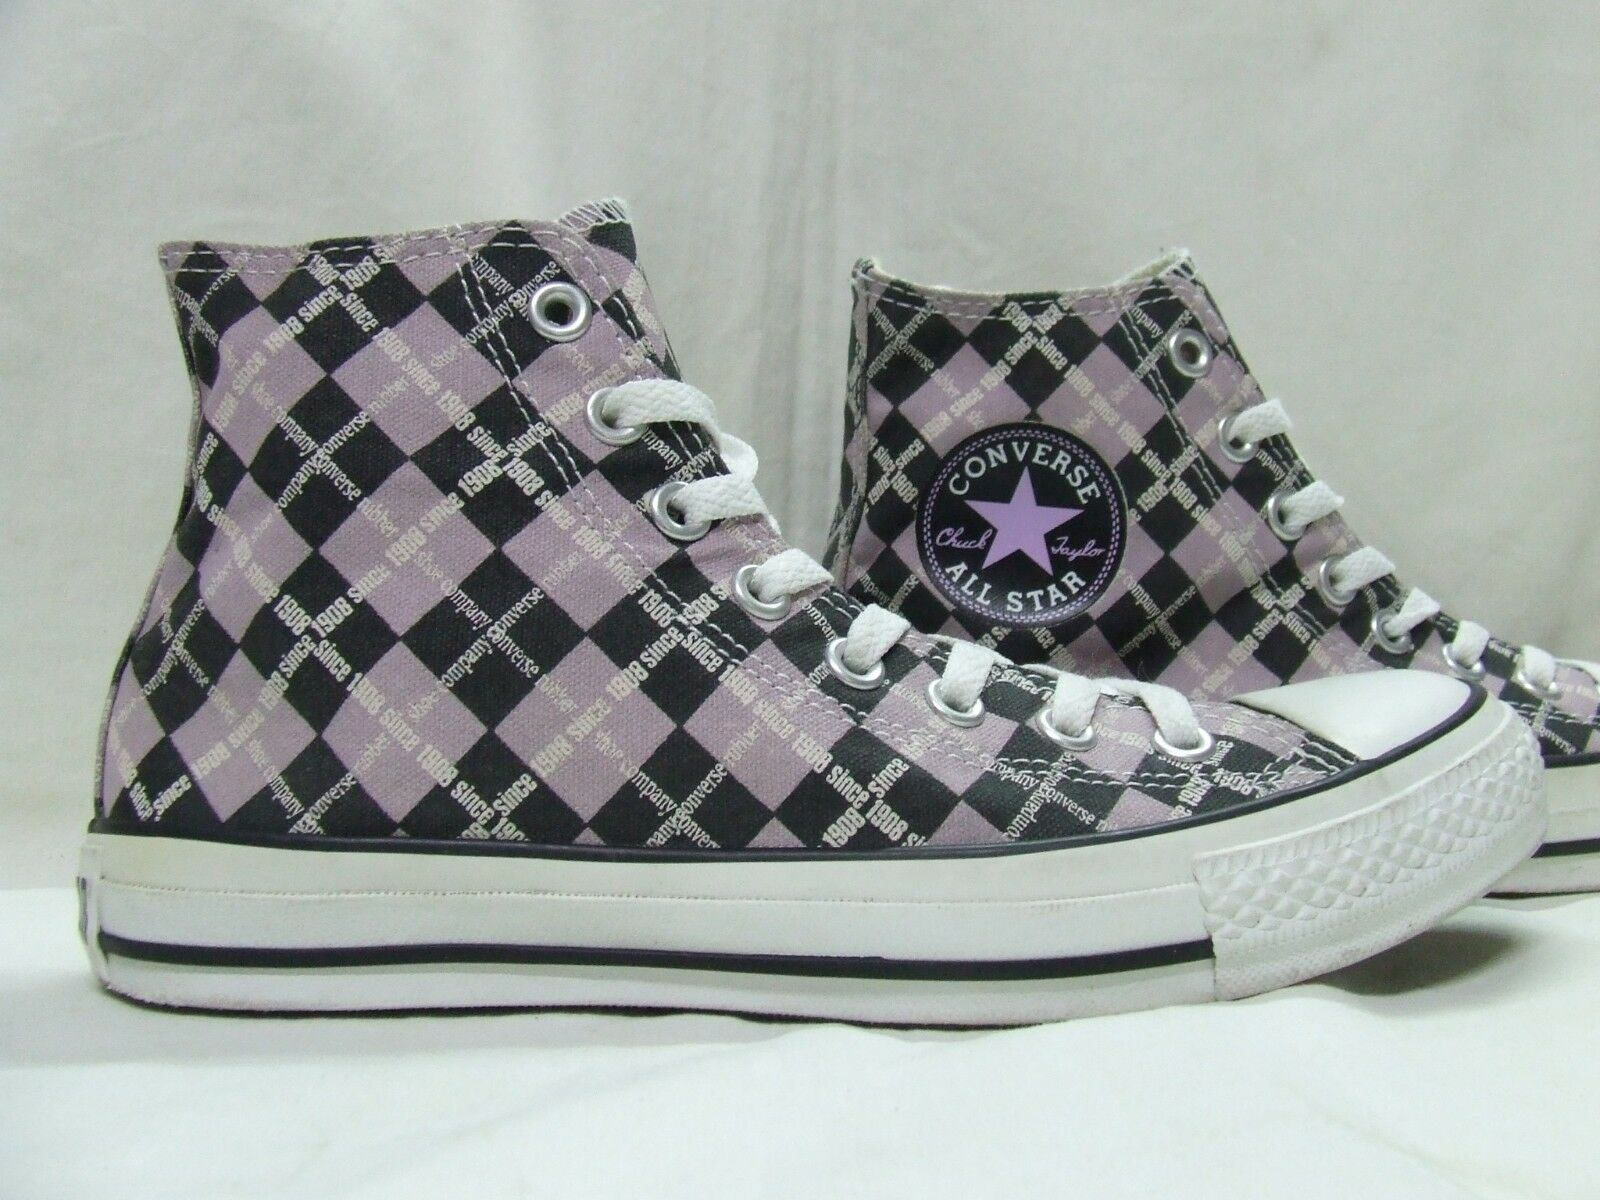 SHOES MAN WOMAN VINTAGE CONVERSE ALL STAR size 7 - 40 (078)